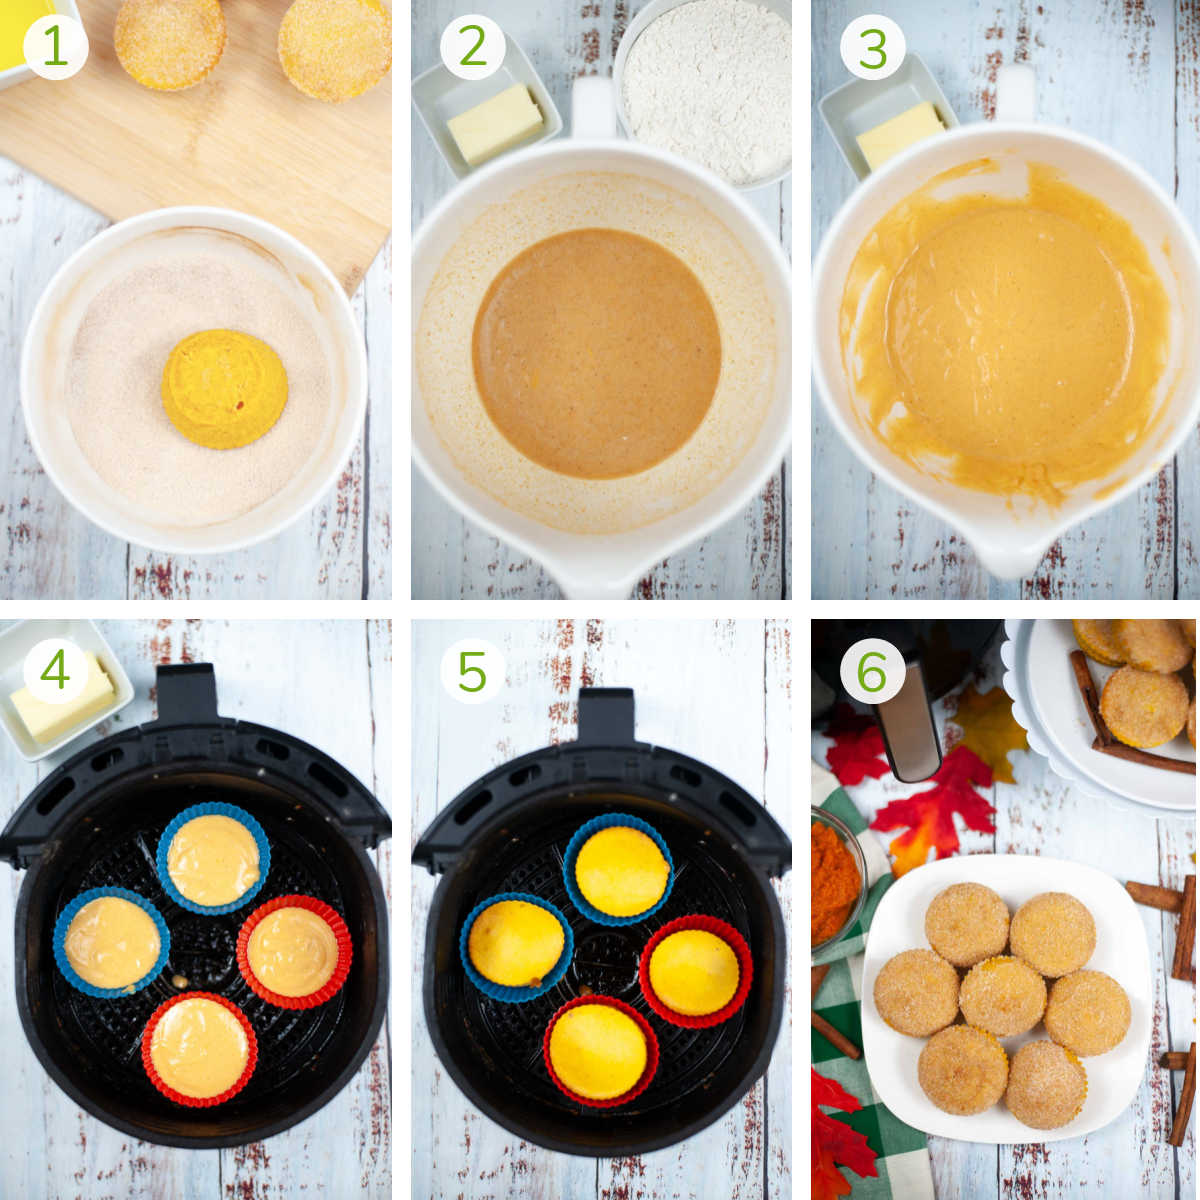 process photos showing how to make the batter, add the pumpkin to the muffin cups and air frying them.